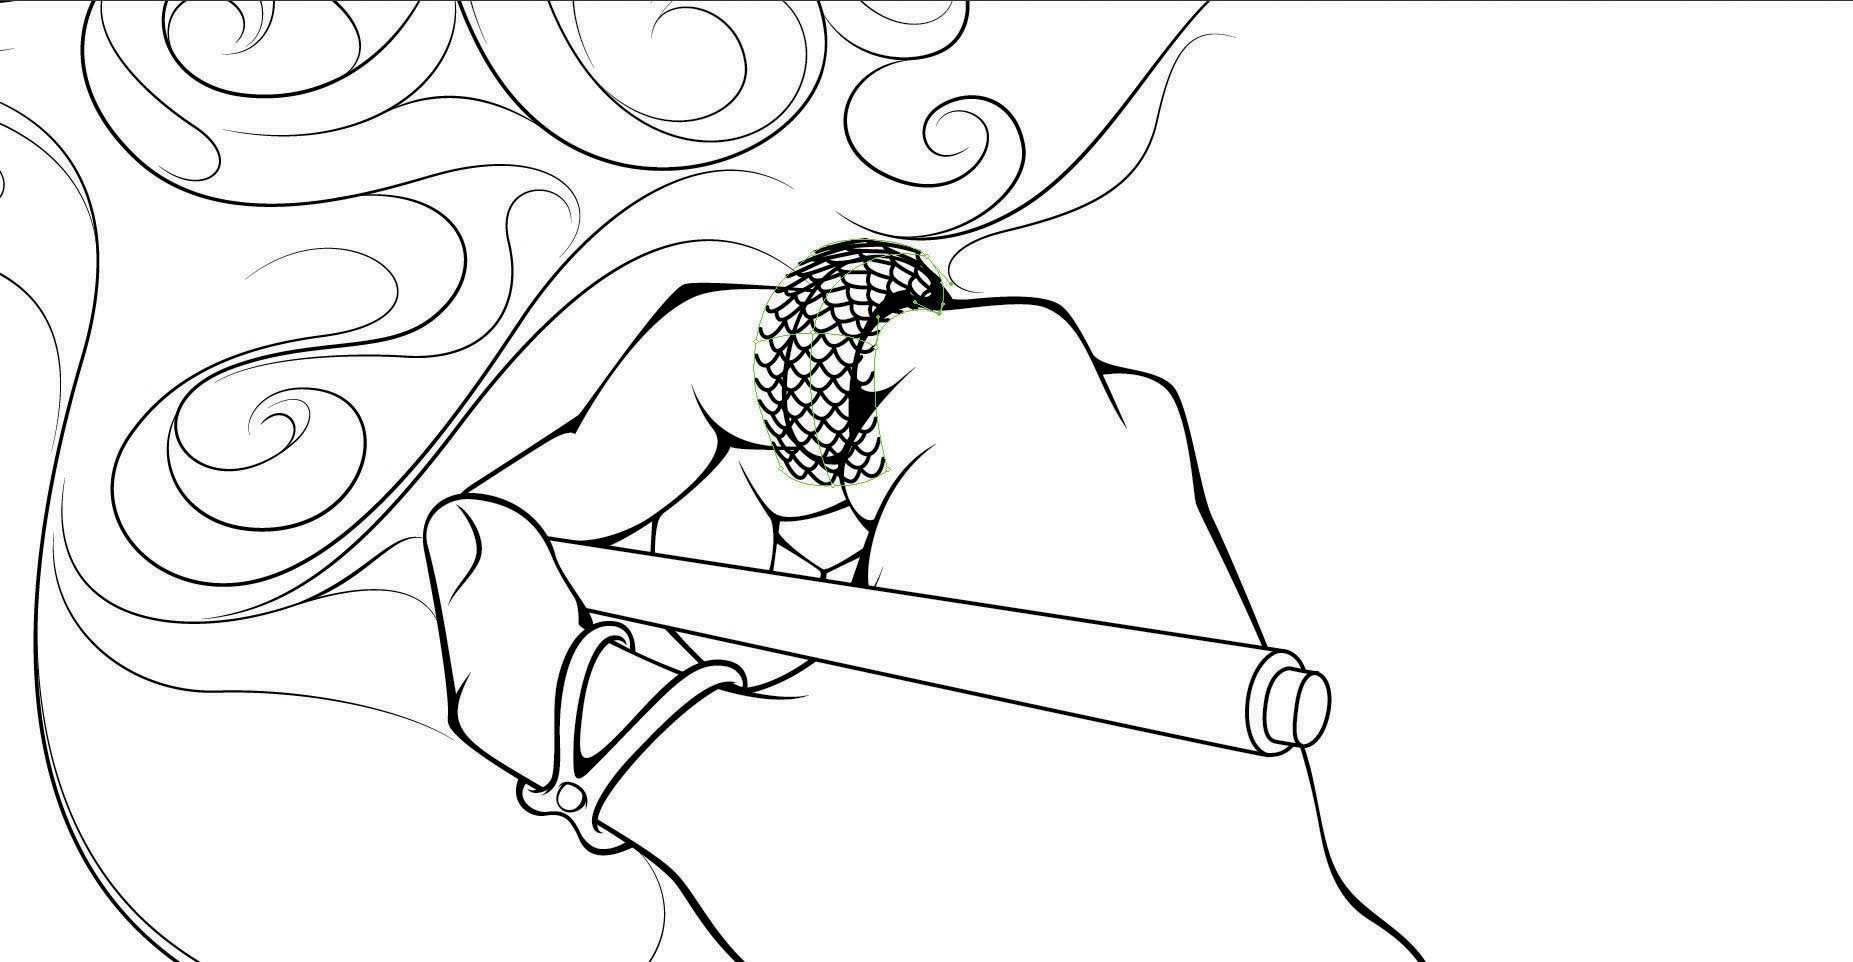 Make a coloring book page with photoshop - Step 9